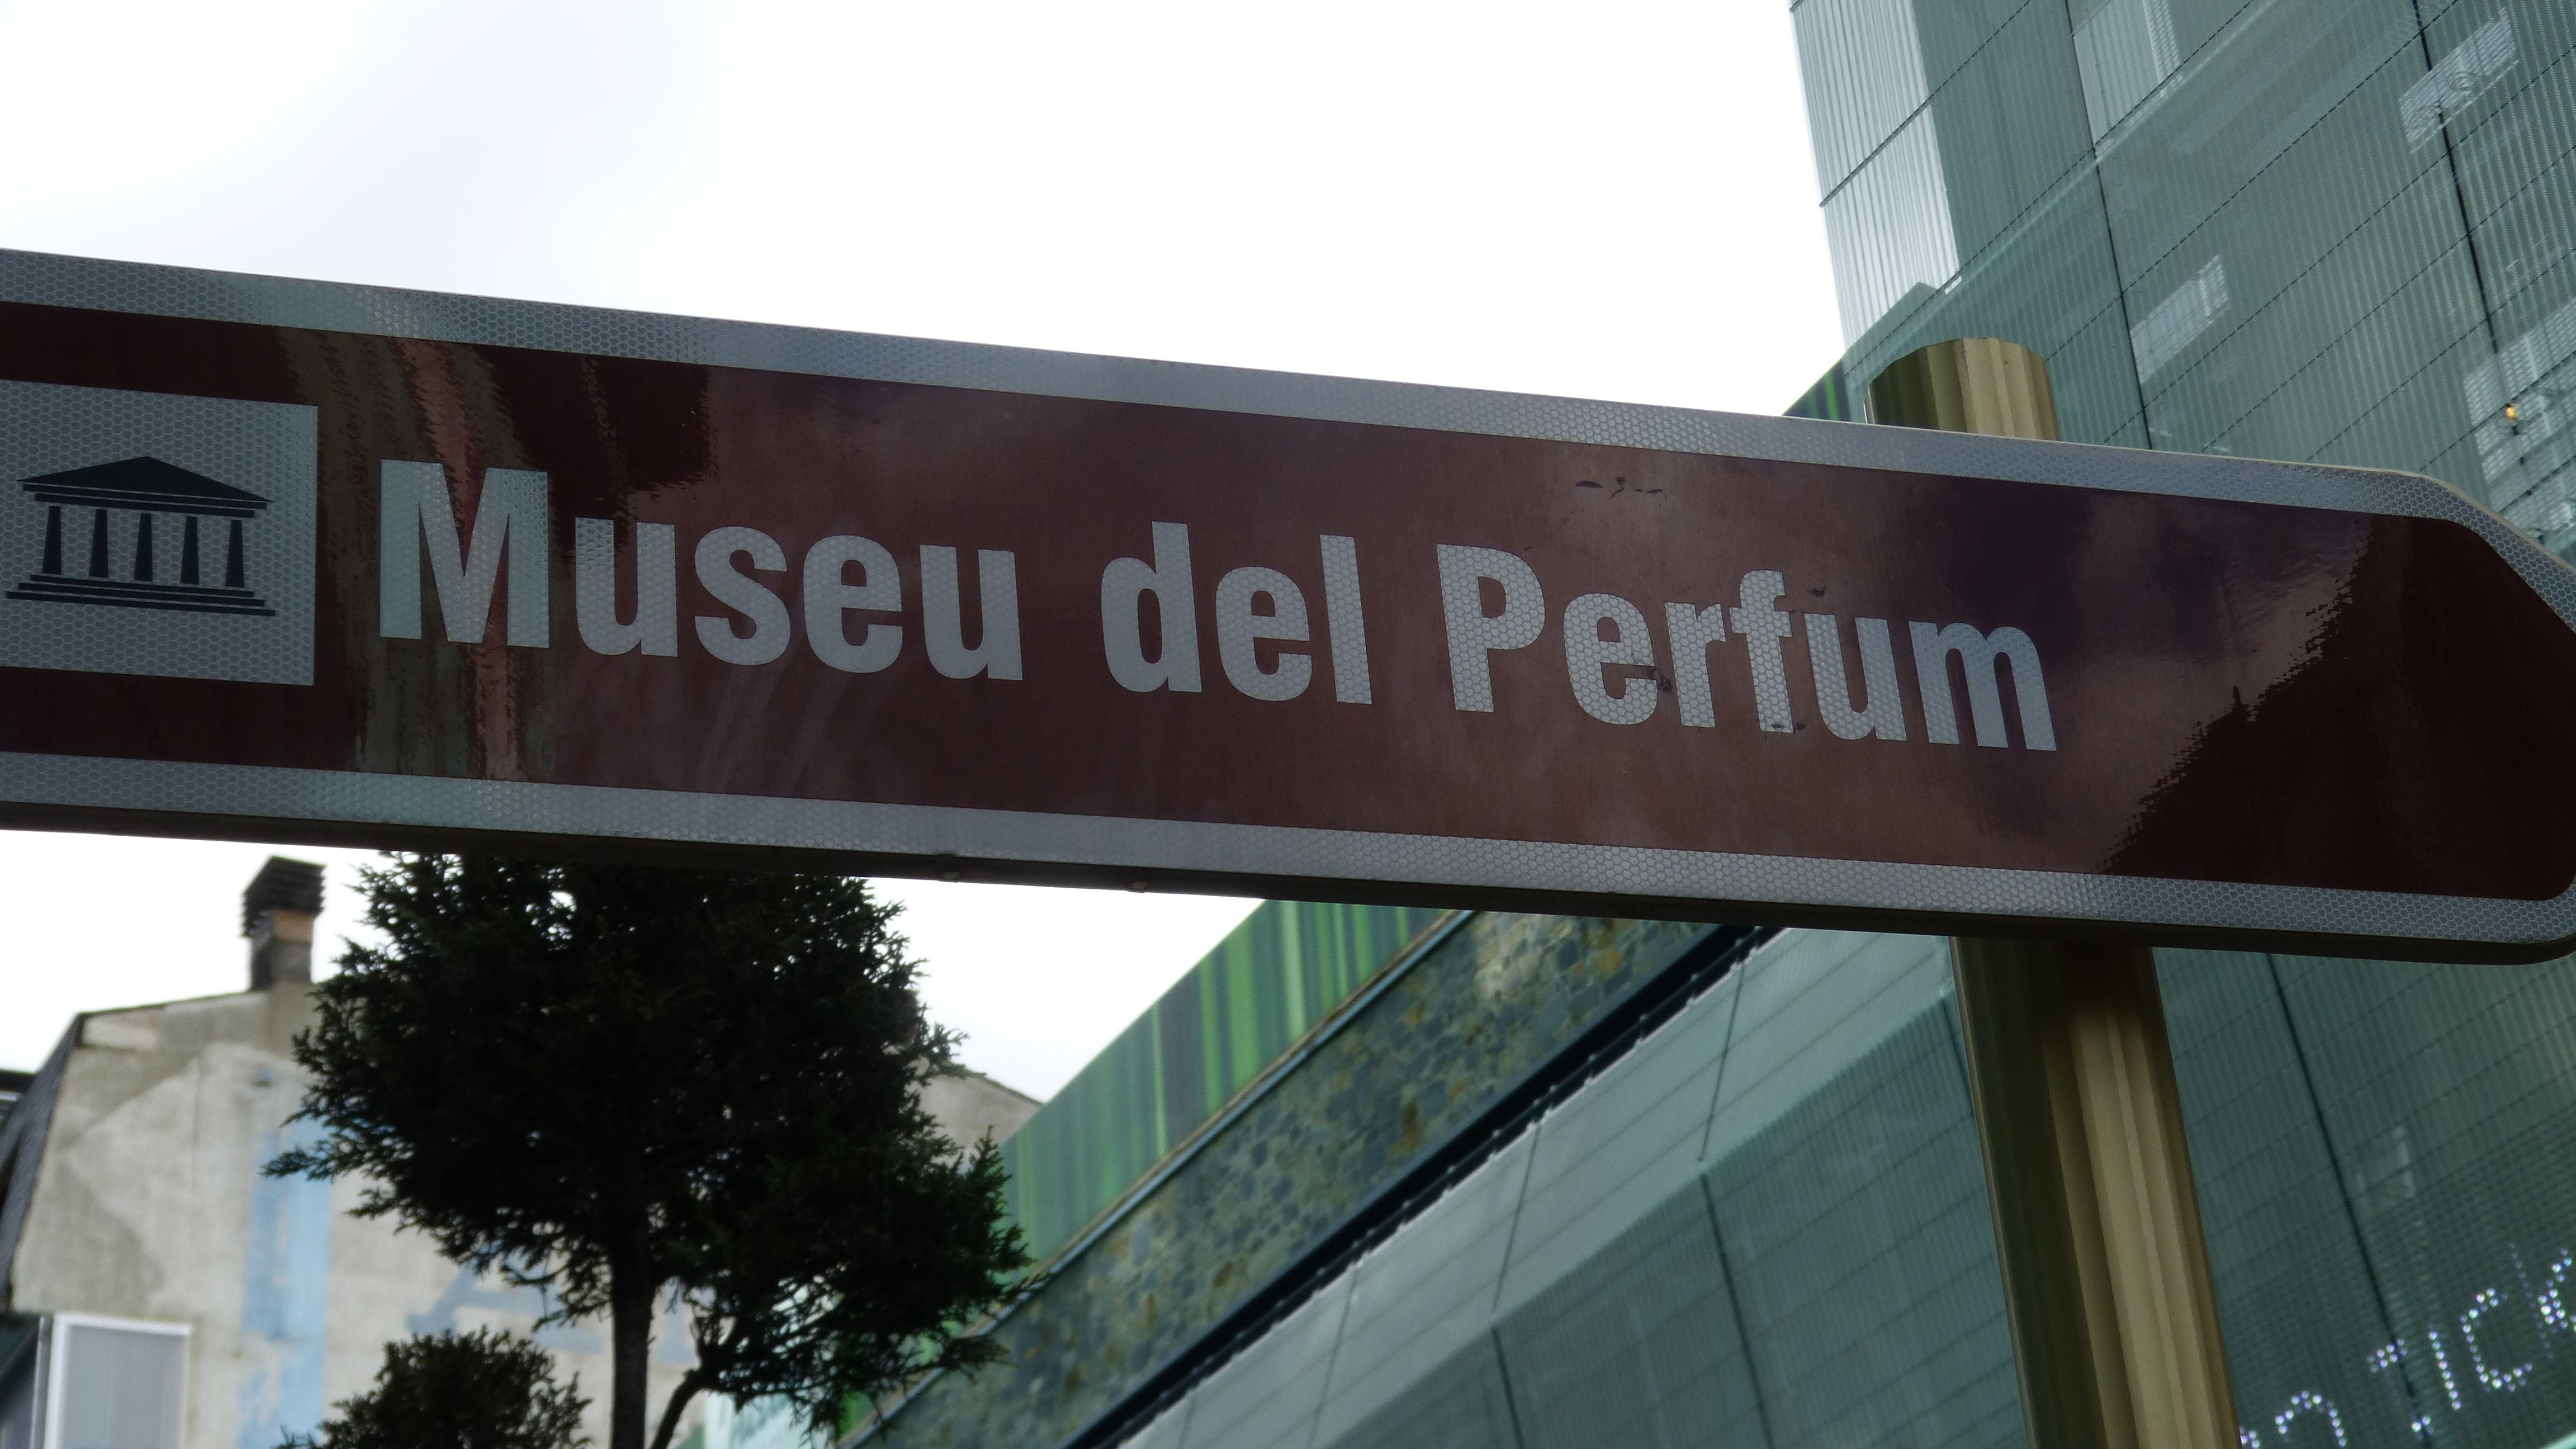 Signage in Museo del Perfume